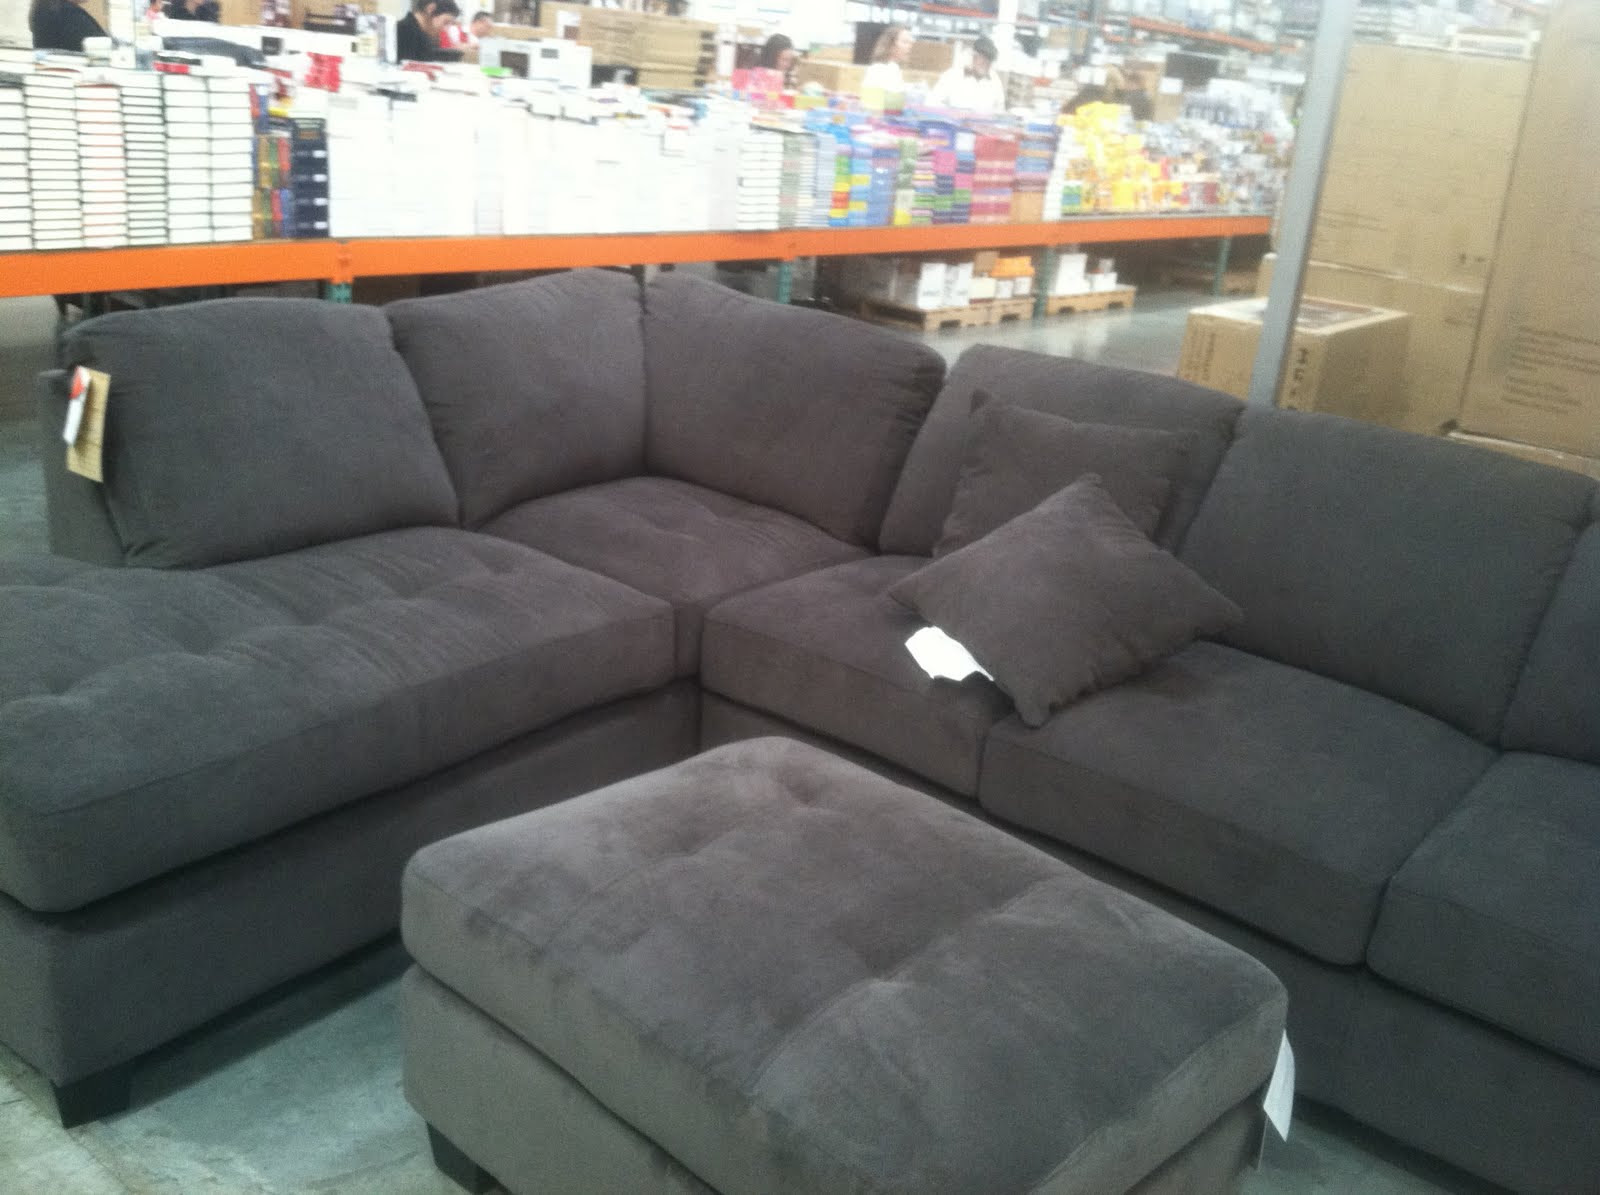 Costco Furniture Home Interior Design